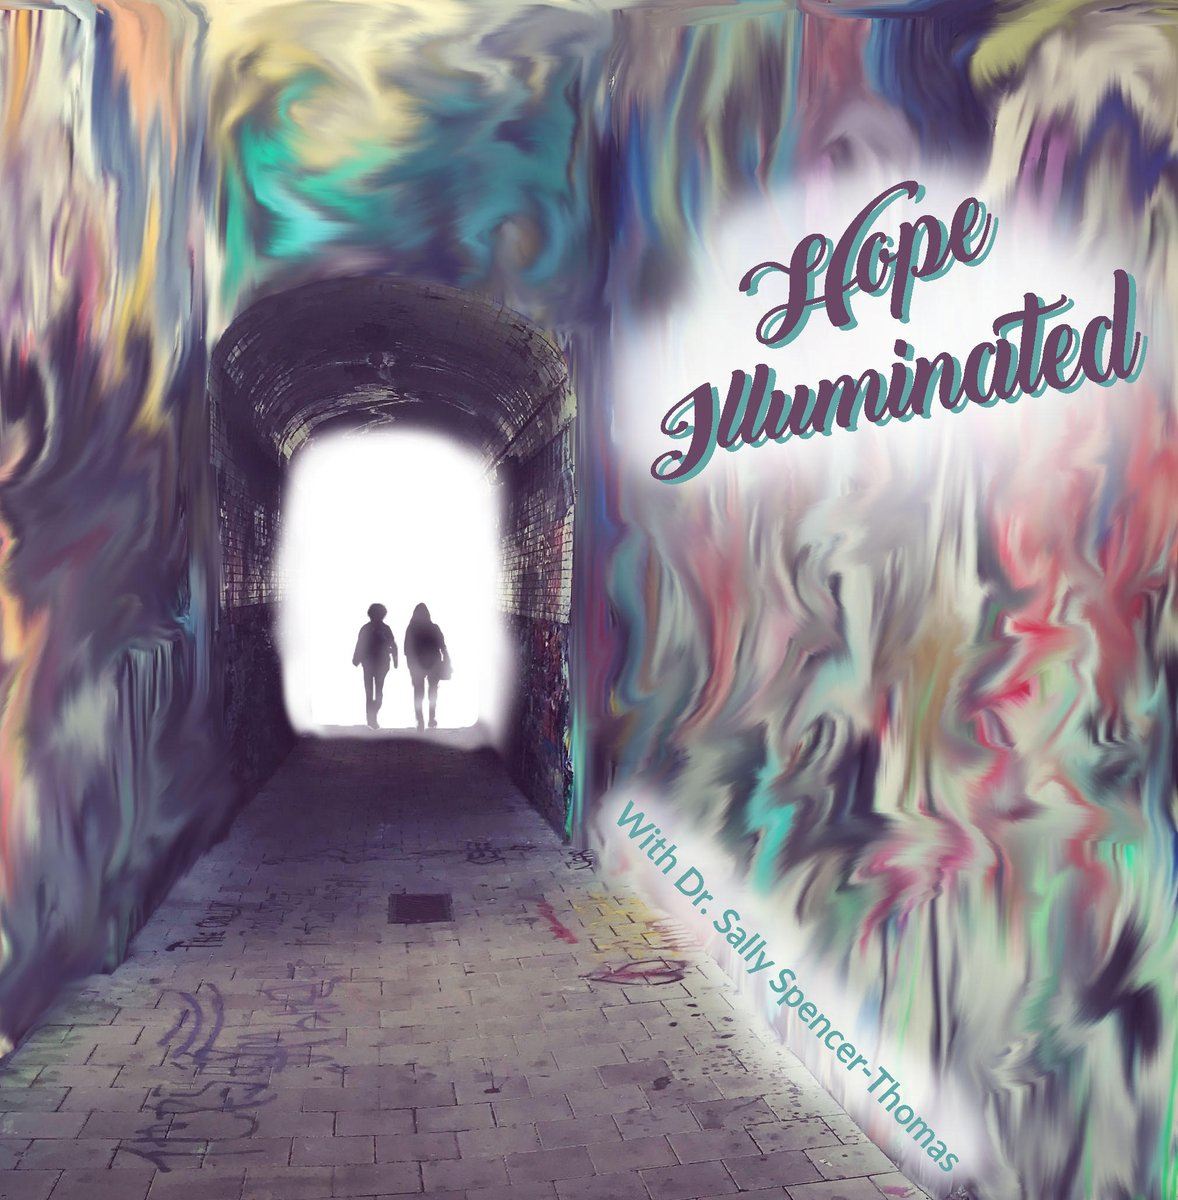 New #podcast art for our #HopeIlluminated show by my son Nick.